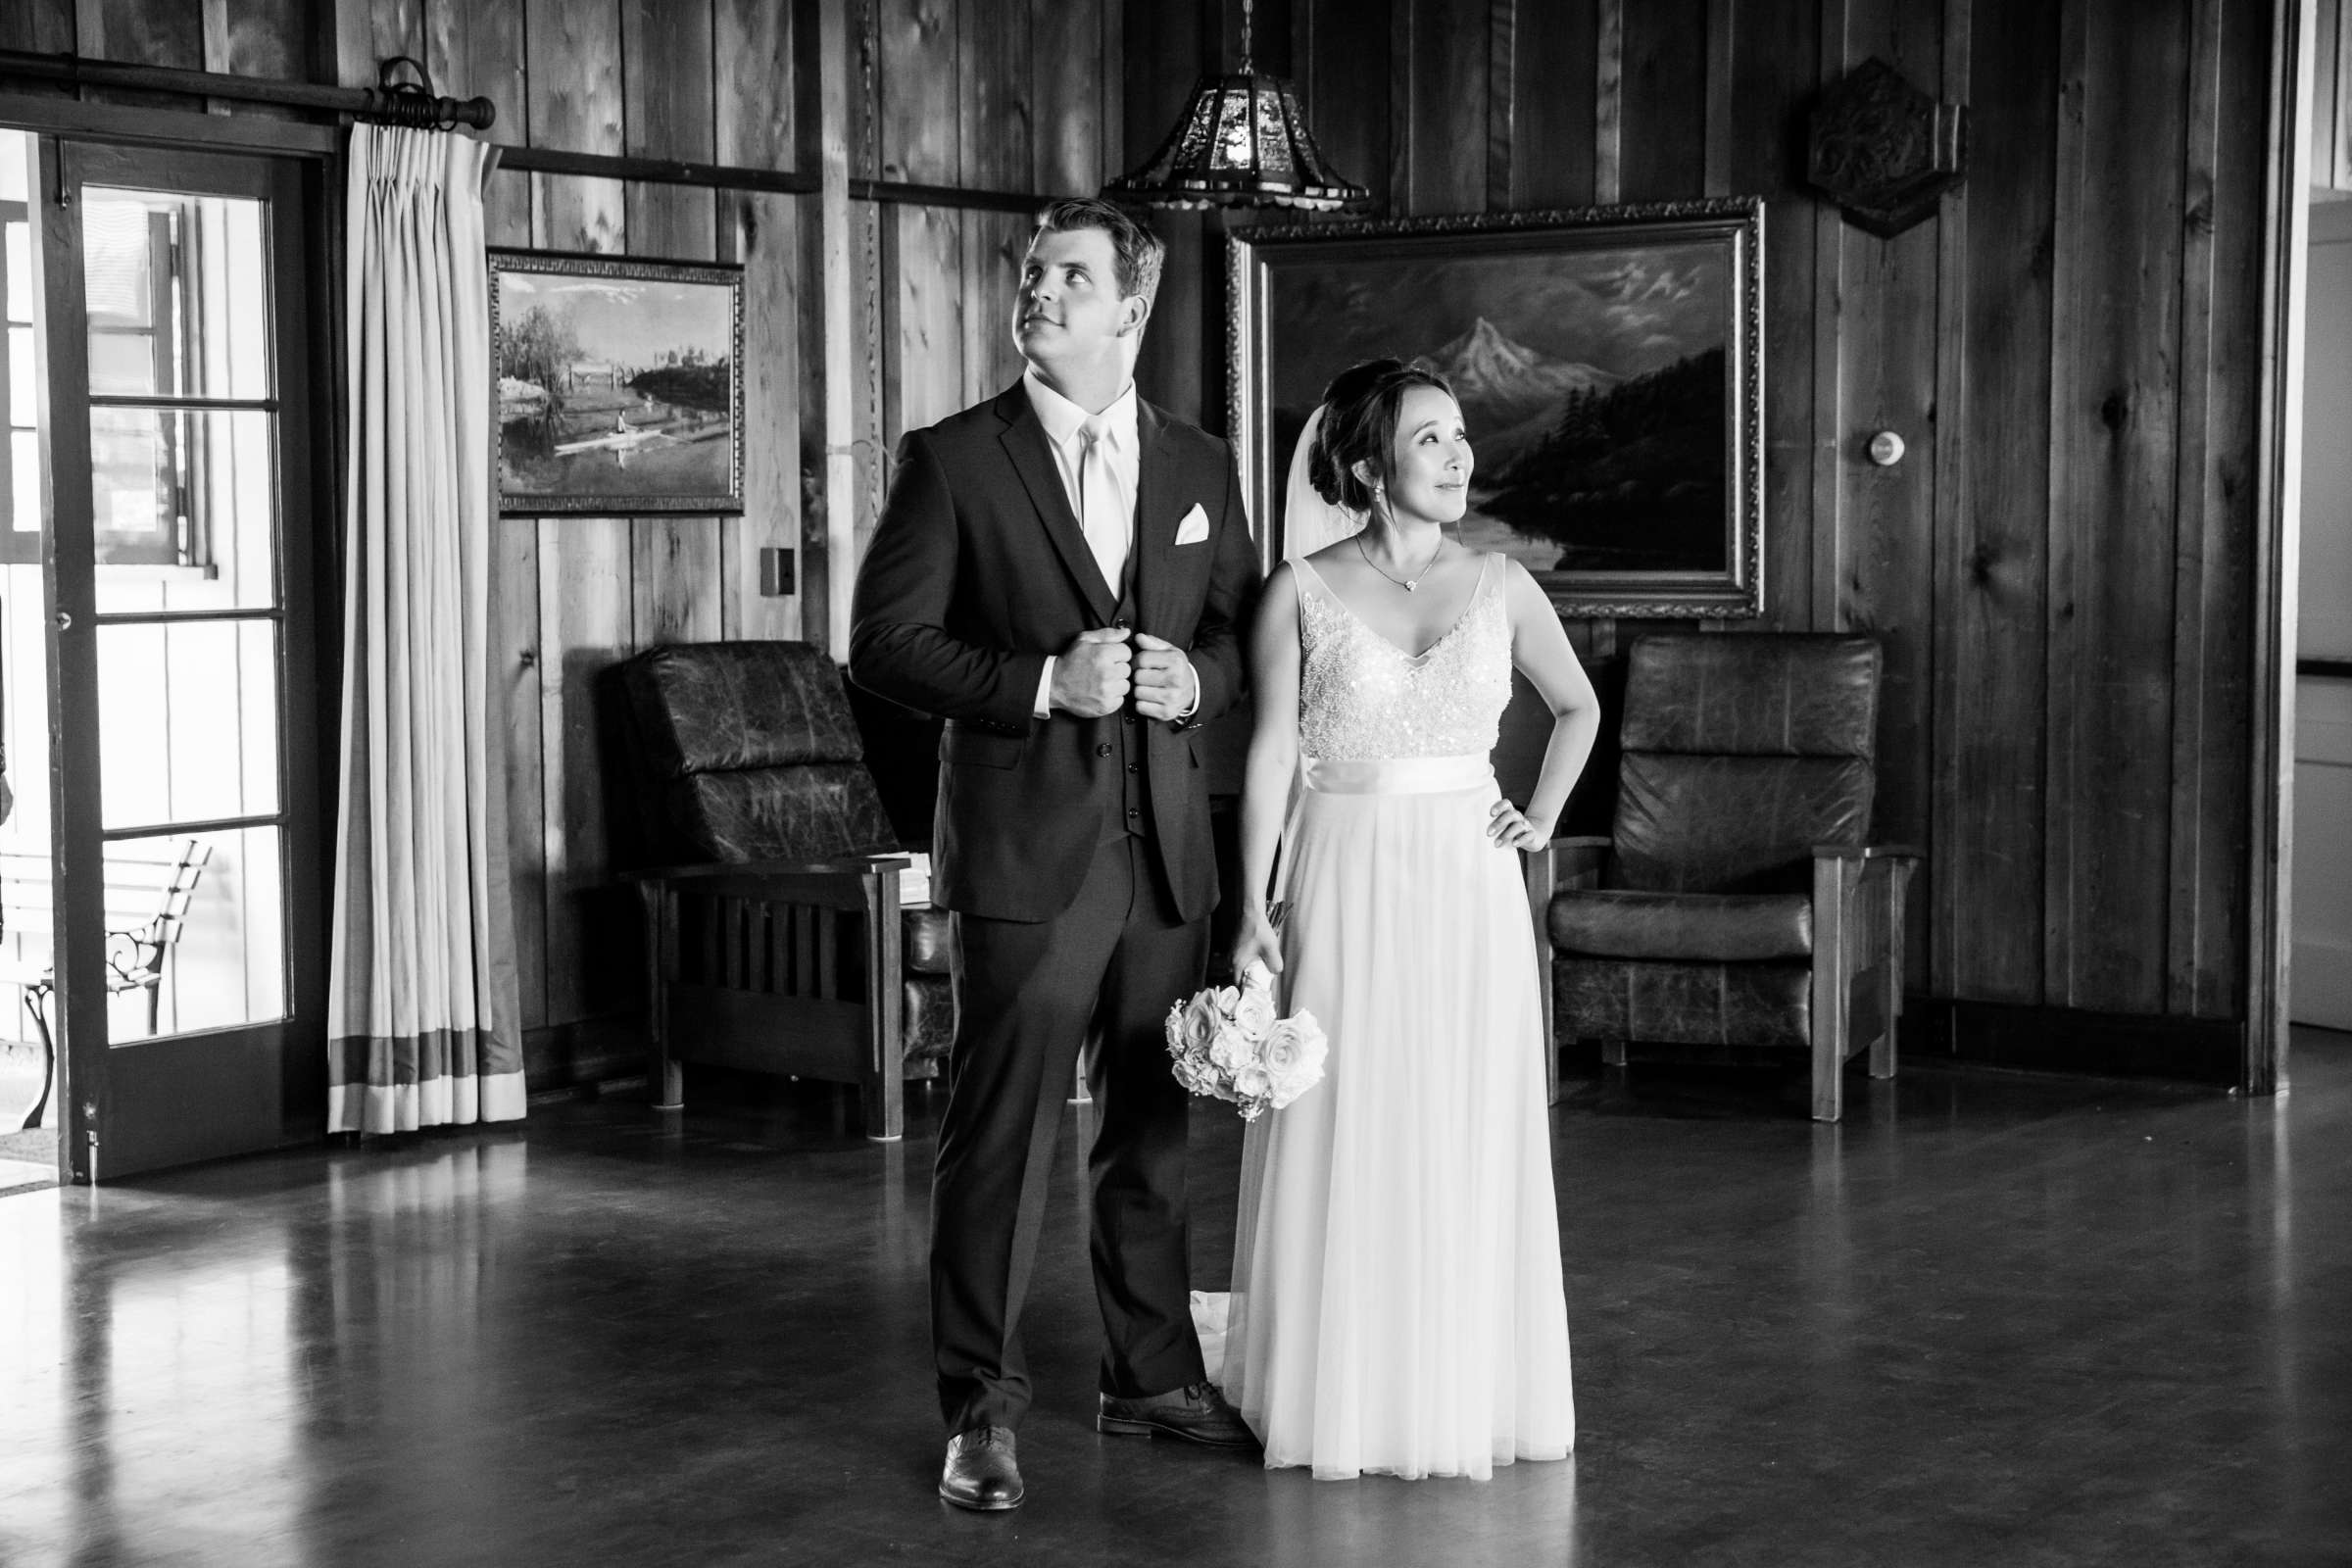 ZLAC Rowing Club Wedding coordinated by Weddings by Thomas Lewis, Melissa and Kyle Wedding Photo #1 by True Photography